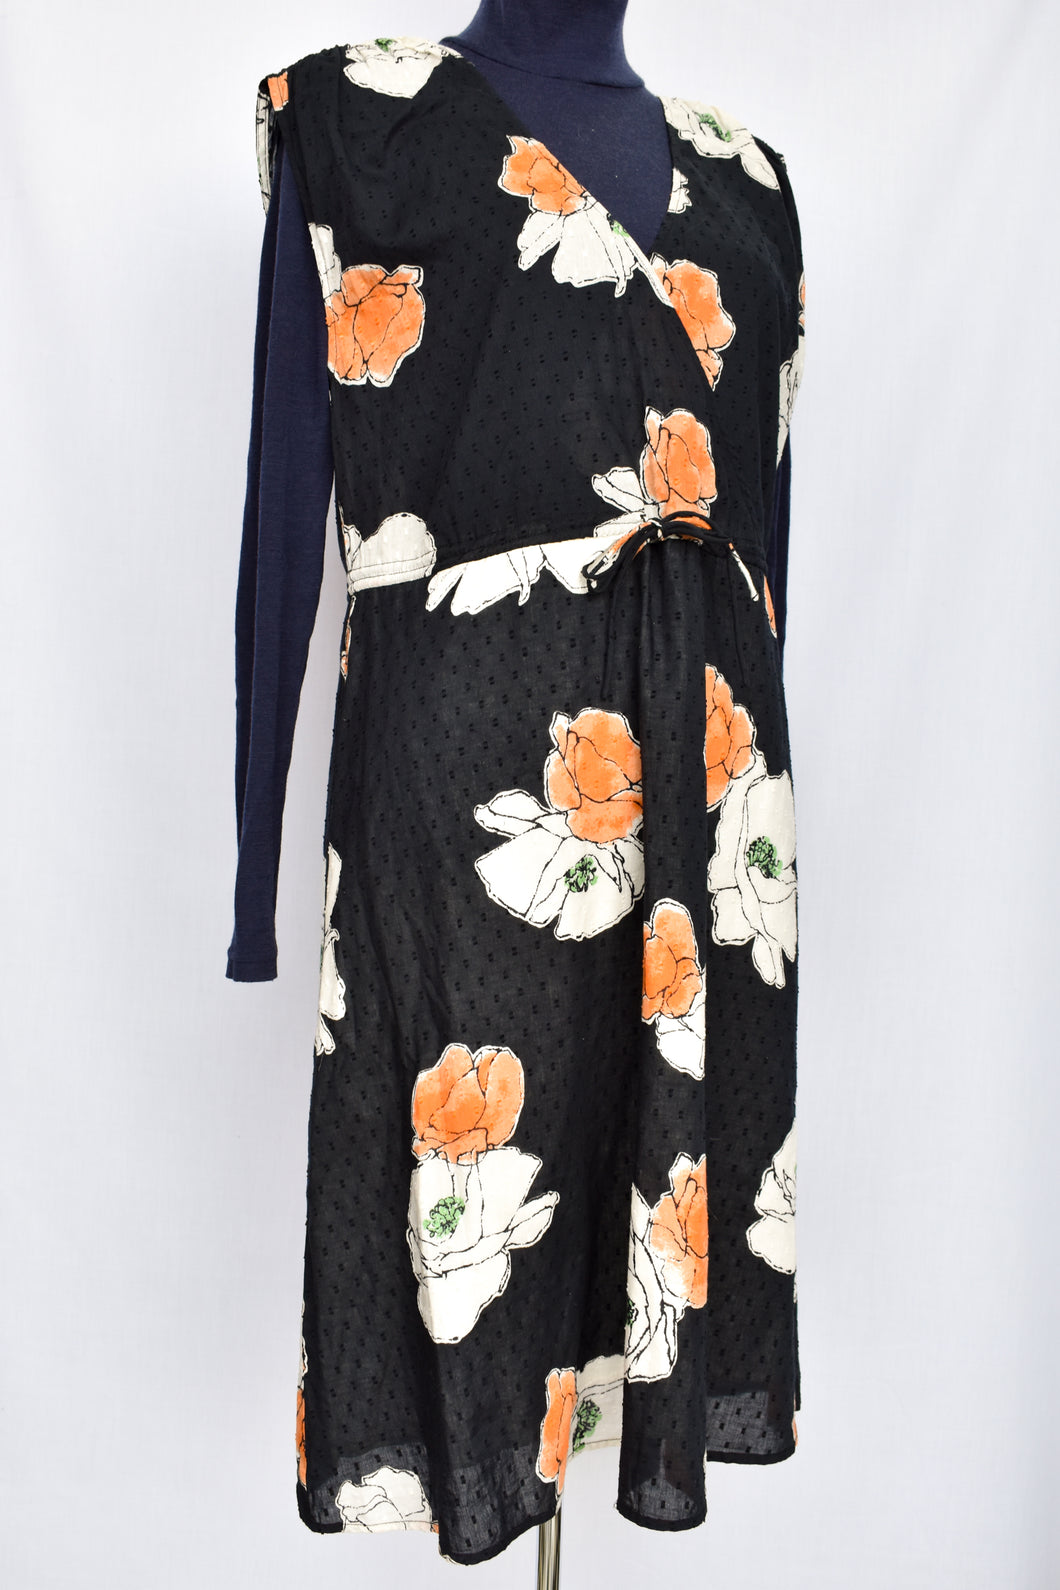 Noa Noa navy floral dress, size S